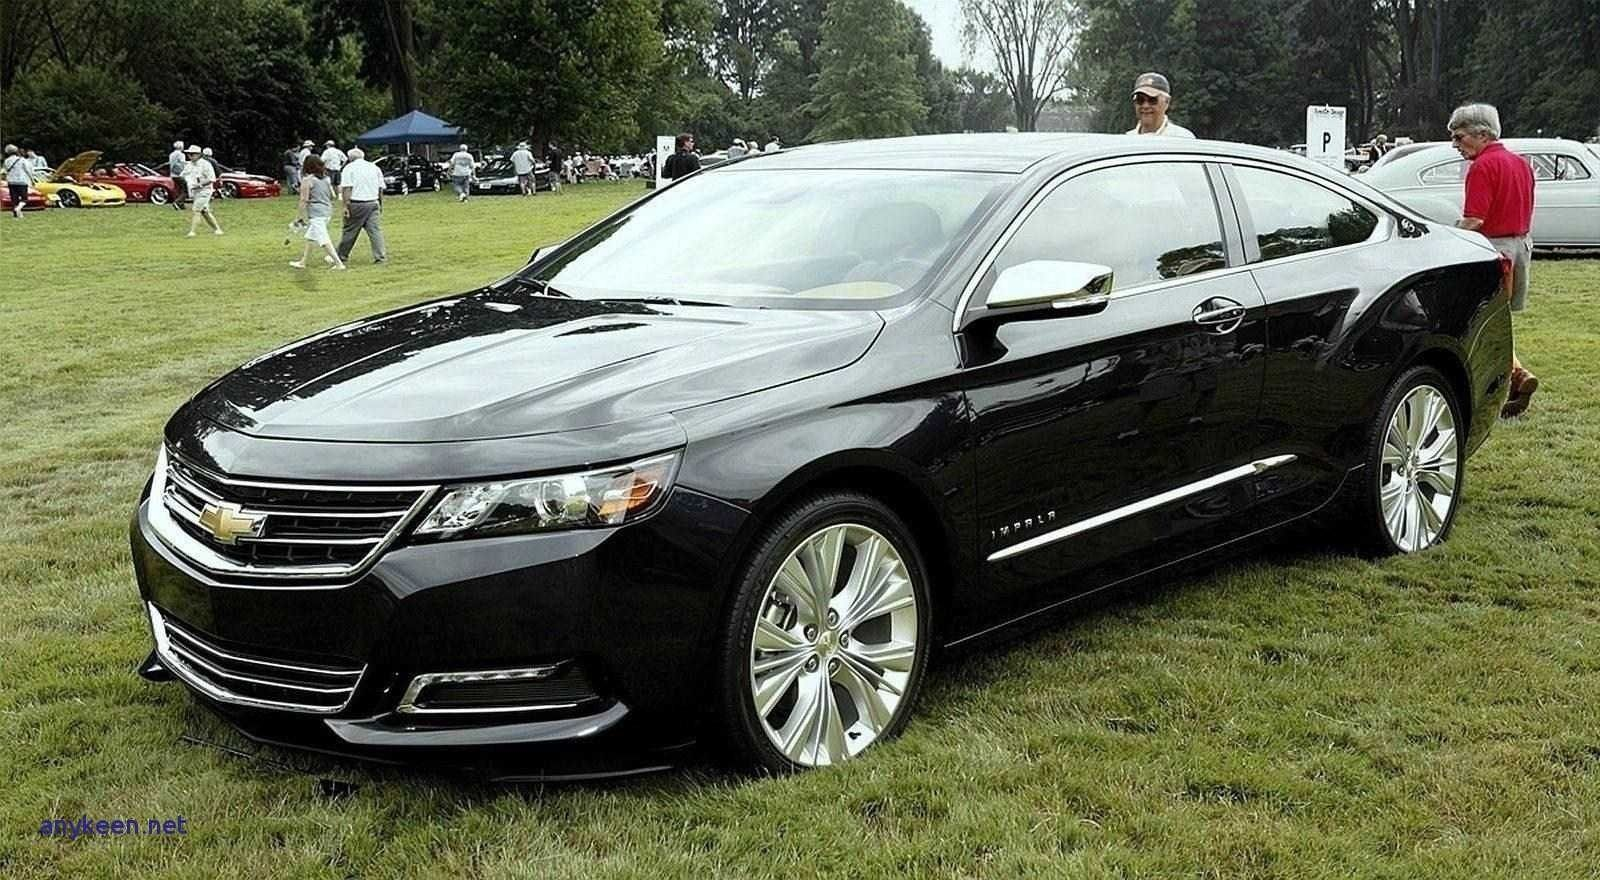 2019 Chevrolet Impala Ltz Picture Release Date And Review